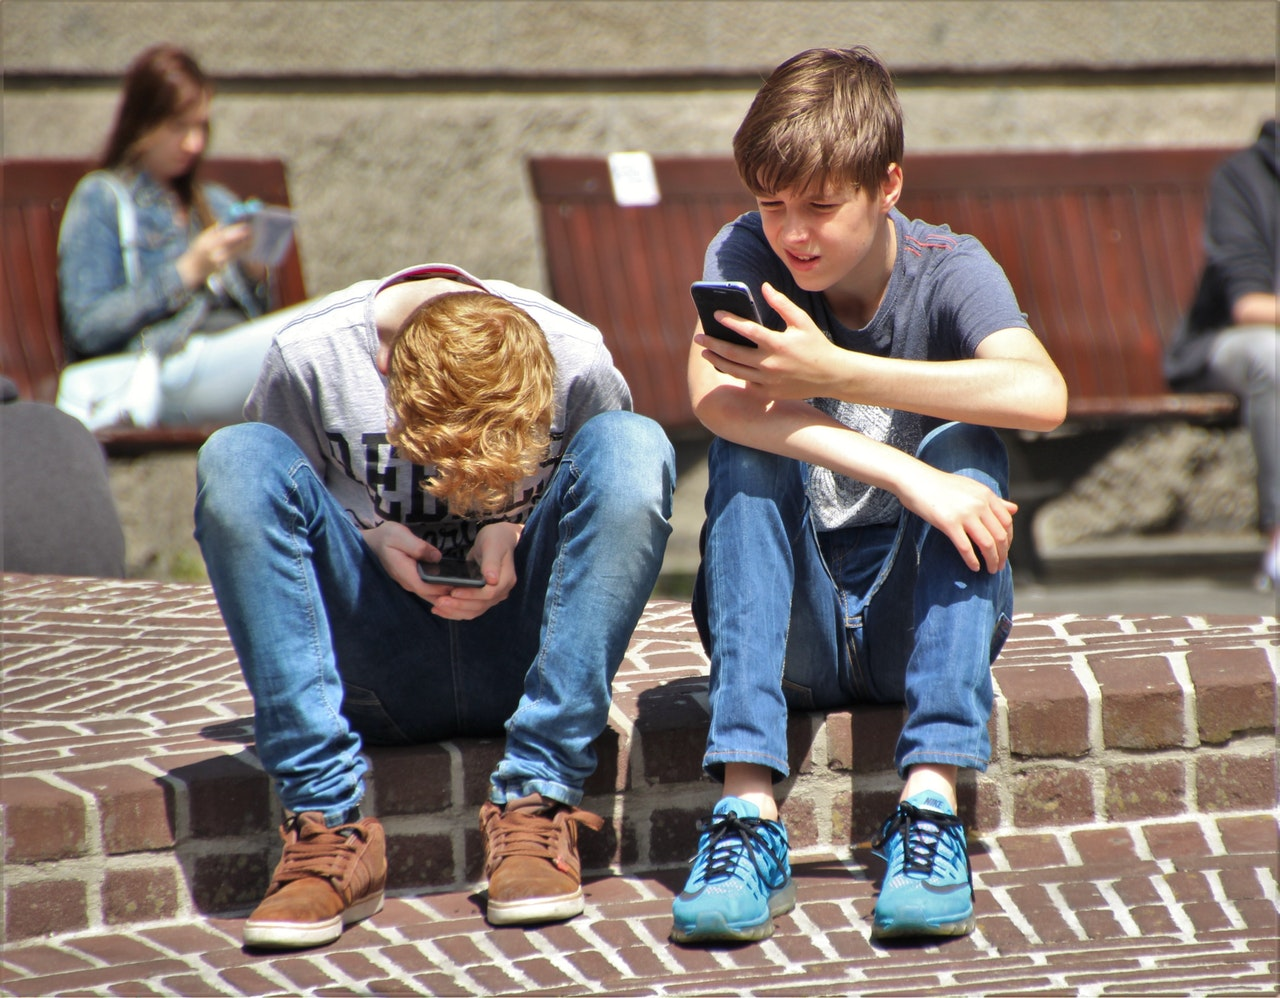 Tips to Protect Children from Sensitive Content Online